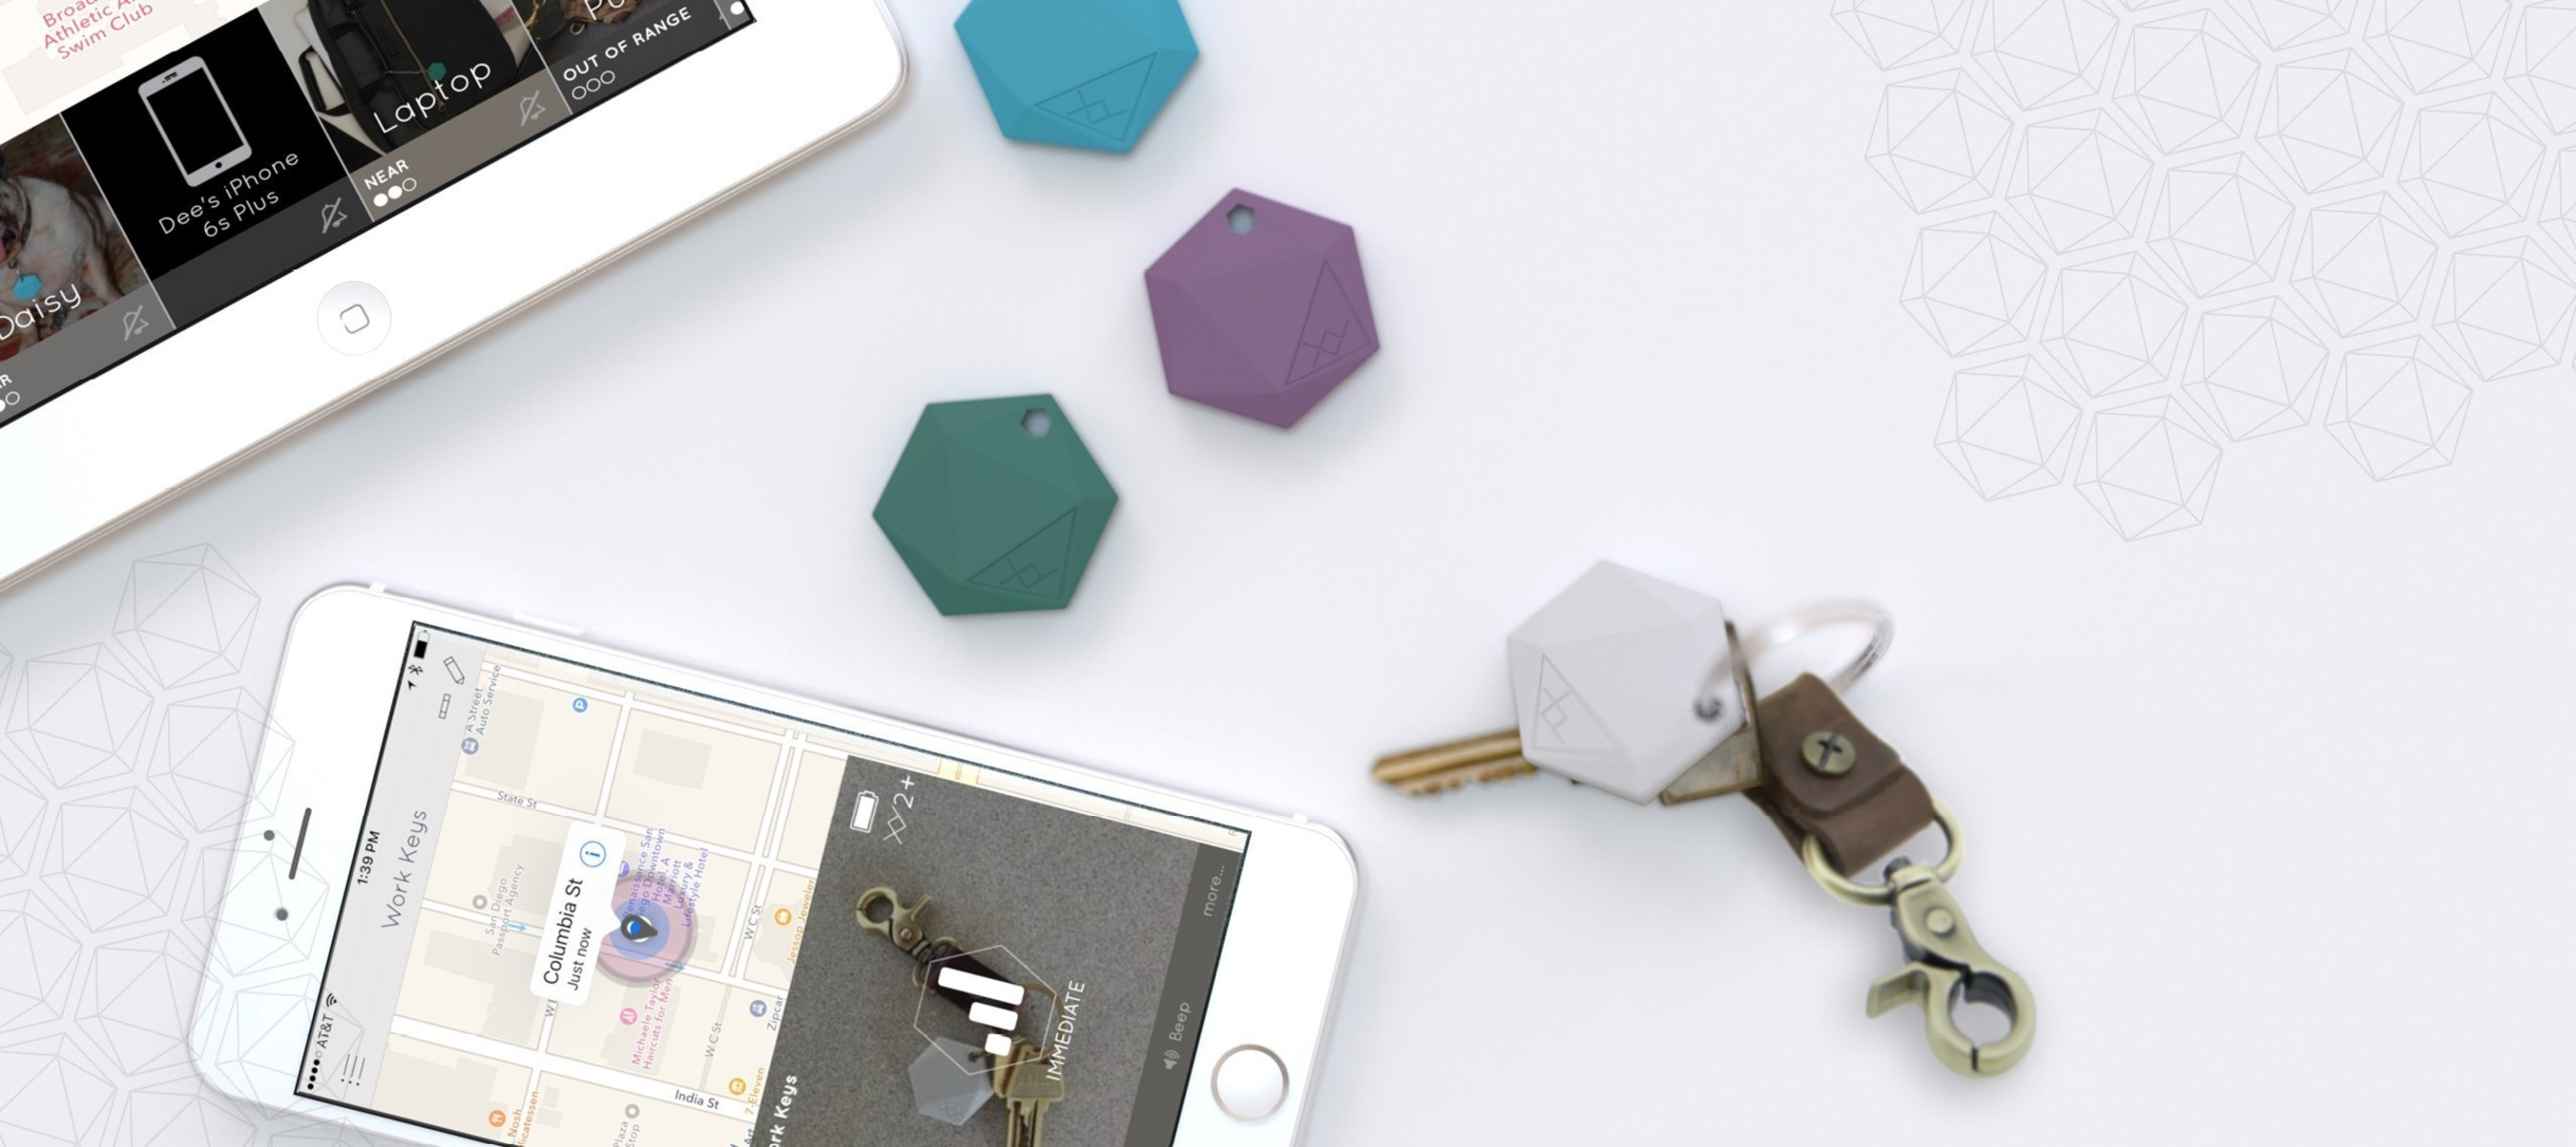 XY Findables is making a family of devices that combine cutting edge Bluetooth LE technology and an easy-to-use mobile app with the goal of transforming everything we own into easily findable smart objects. A slam dunk on Kickstarter, and now with 100,000 units sold under their belt, they are coming back to the crowd for an equity raise with an expanding 2016 product line and world-class retail partners in Amazon, Best Buy, Walmart and Target, among others.Visit www.startengine.com/startup/xy-findables.